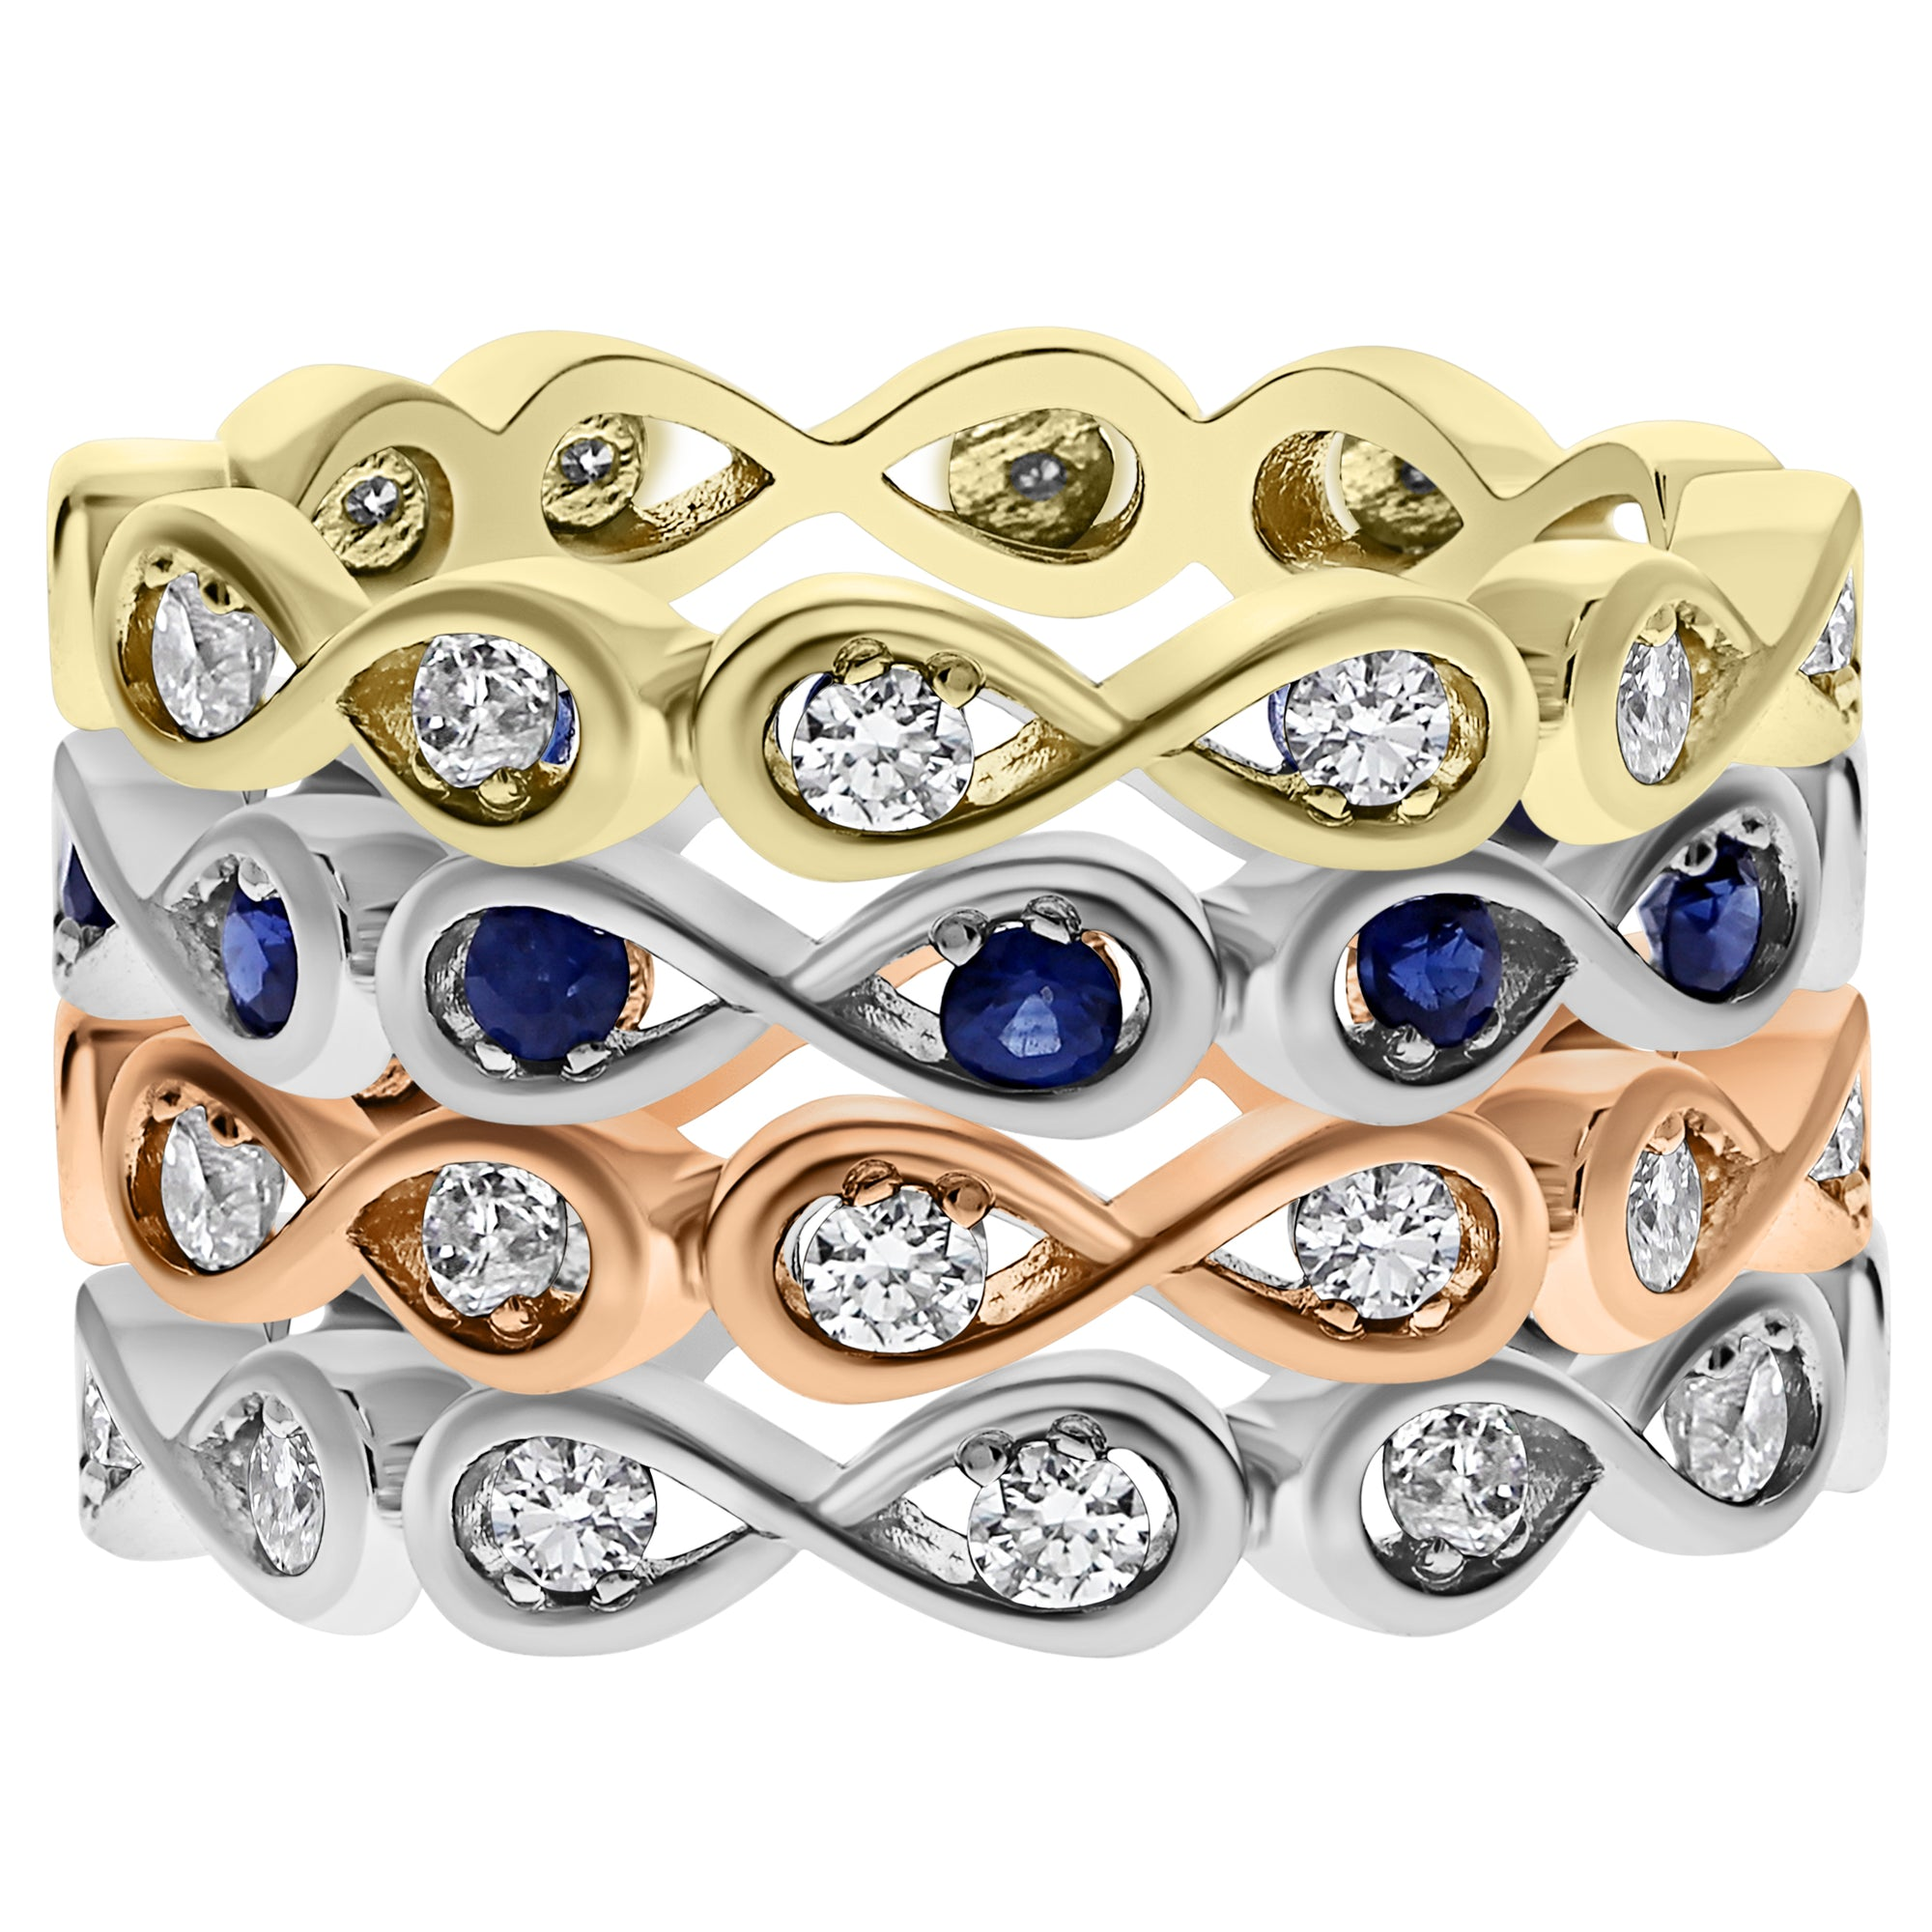 commission mayo jewellery infinity ring o sapphire ireland product galway nigel gold reilly dublin designer rose